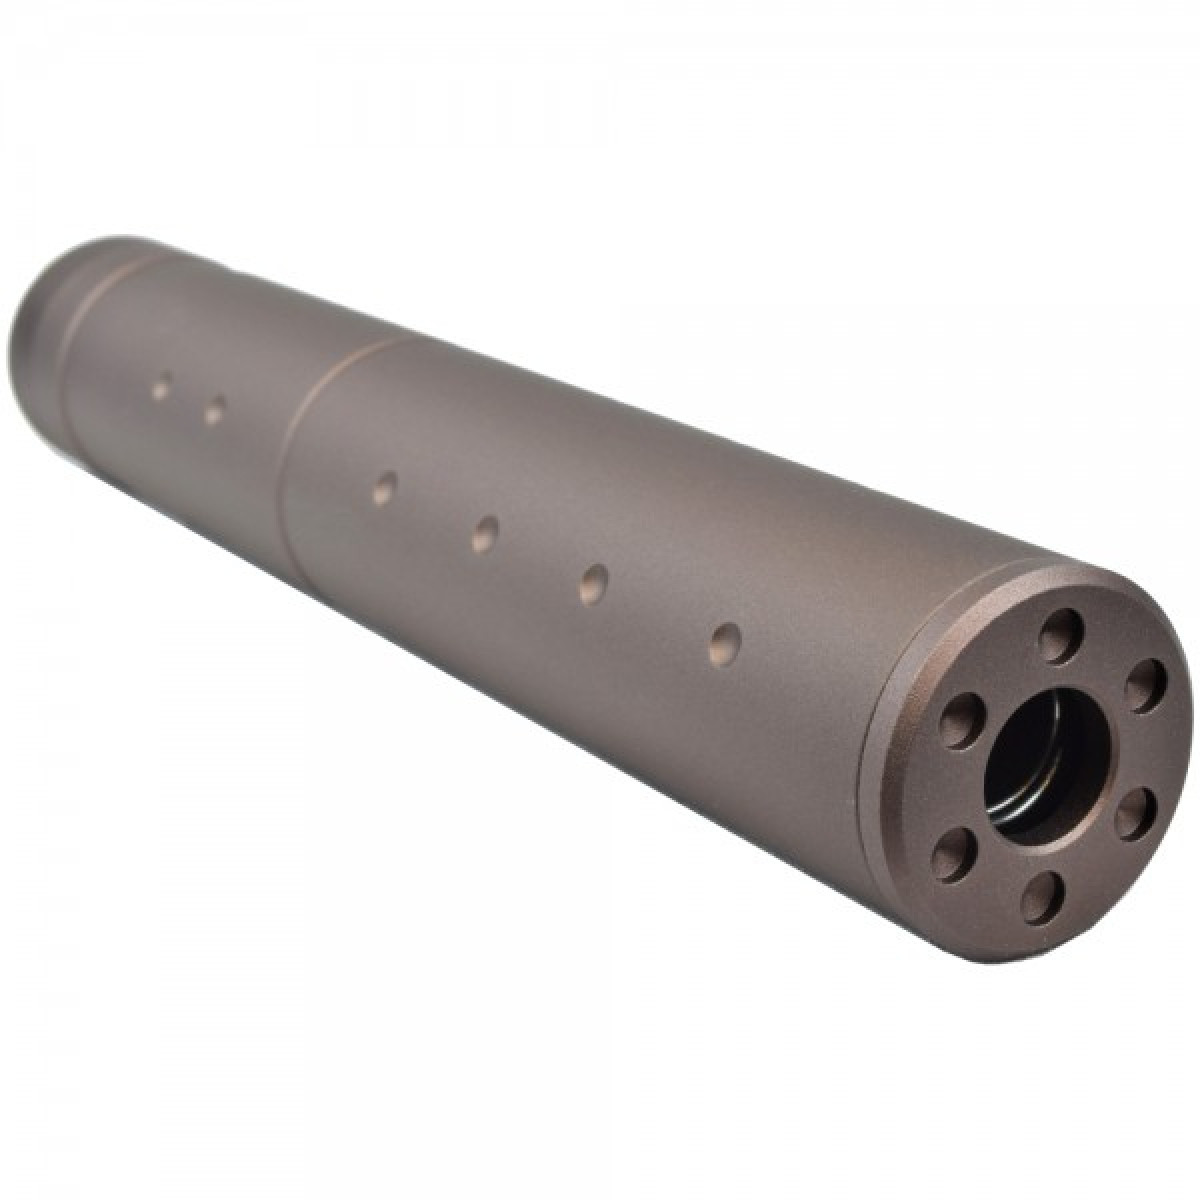 BIG DRAGON SILENCER 190mm DARK EARTH